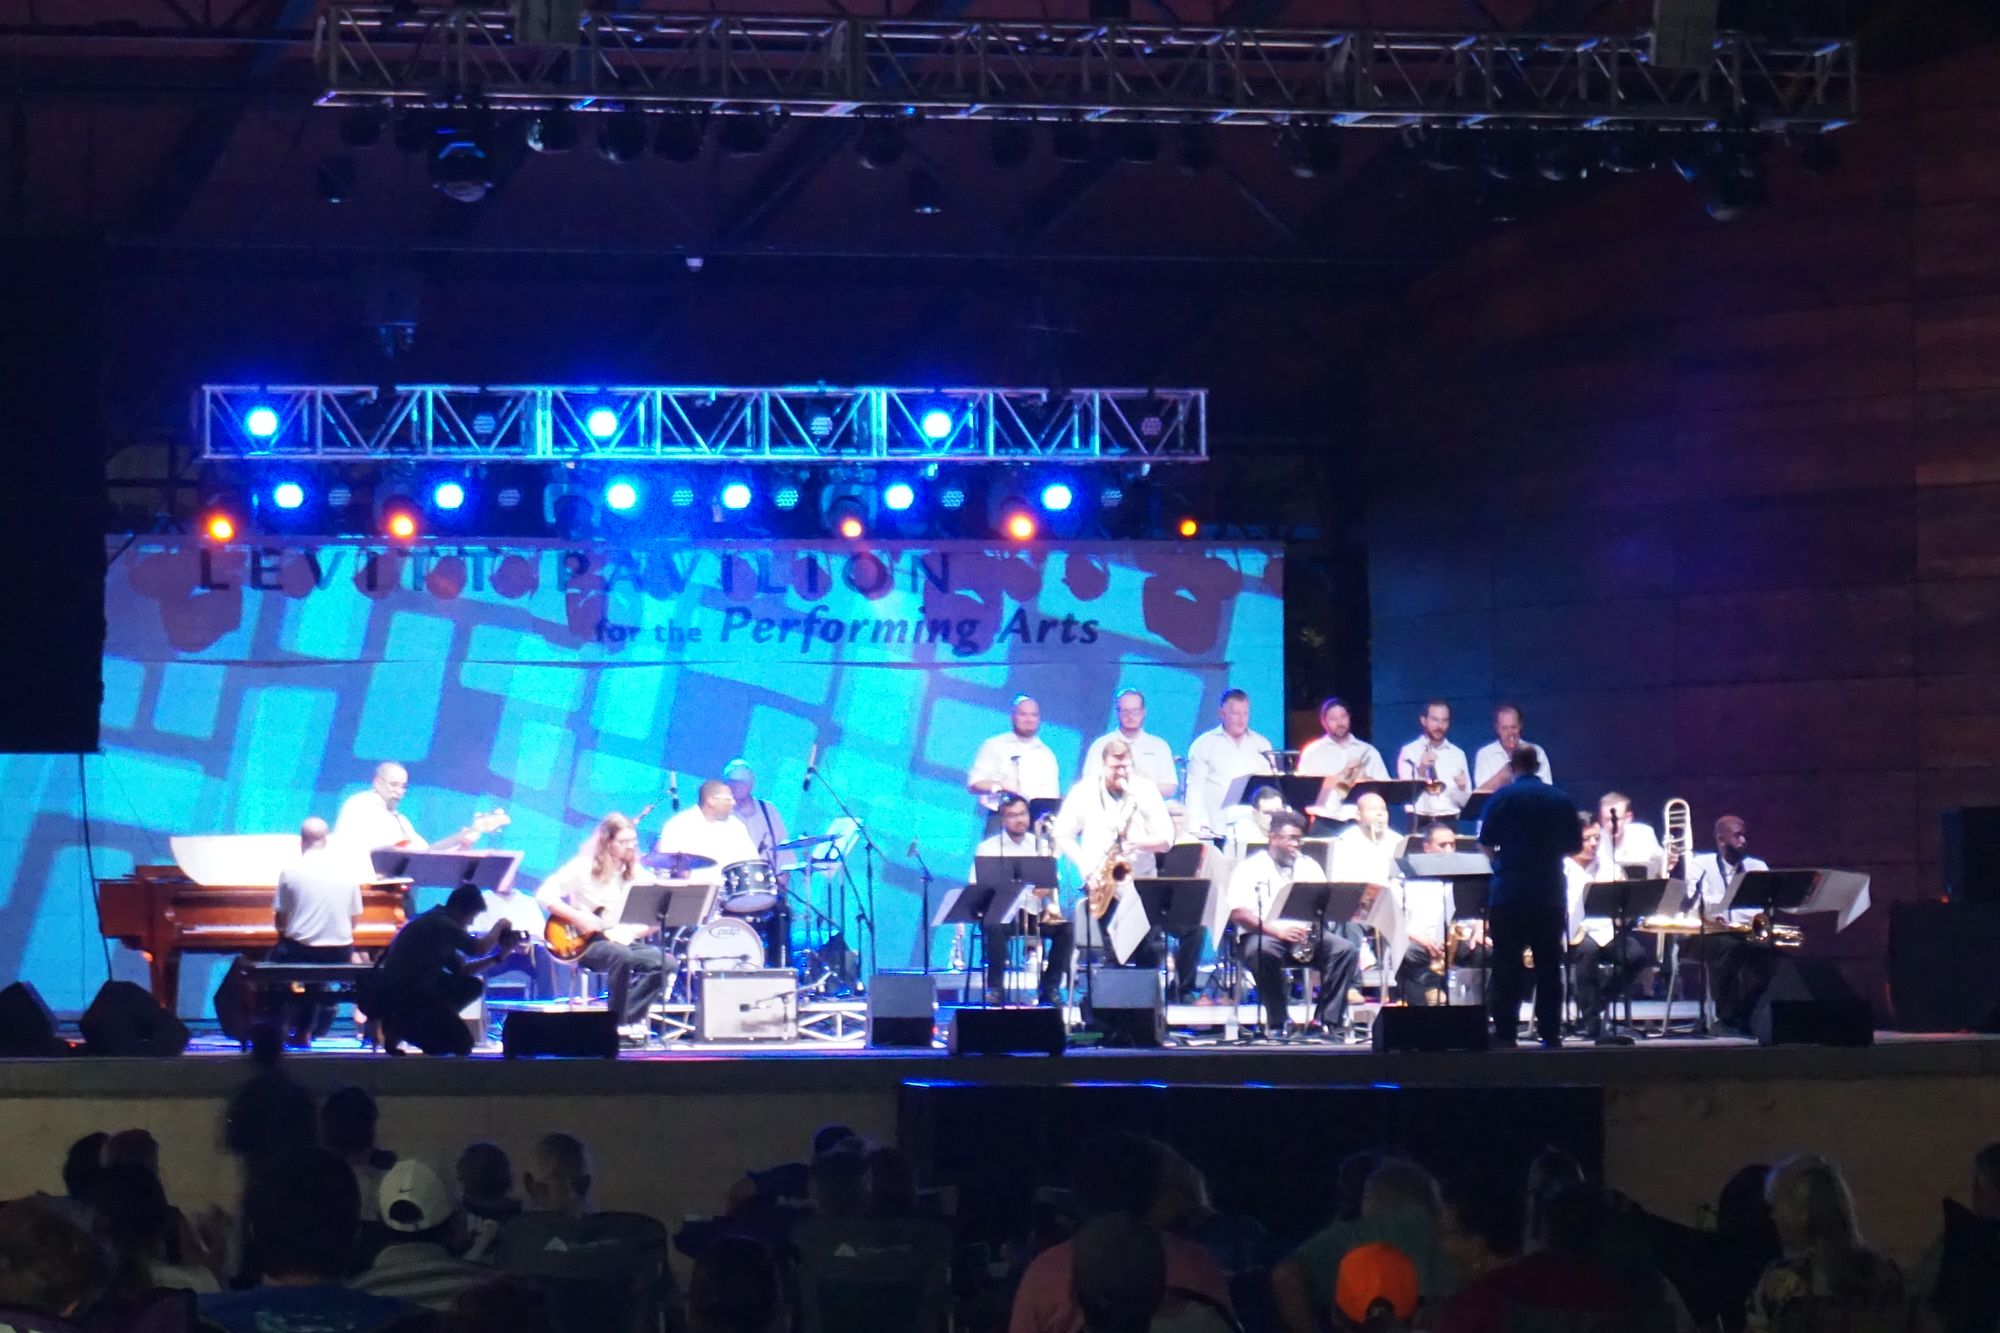 Orchestra at Levitt Pavilion for the Performing Arts